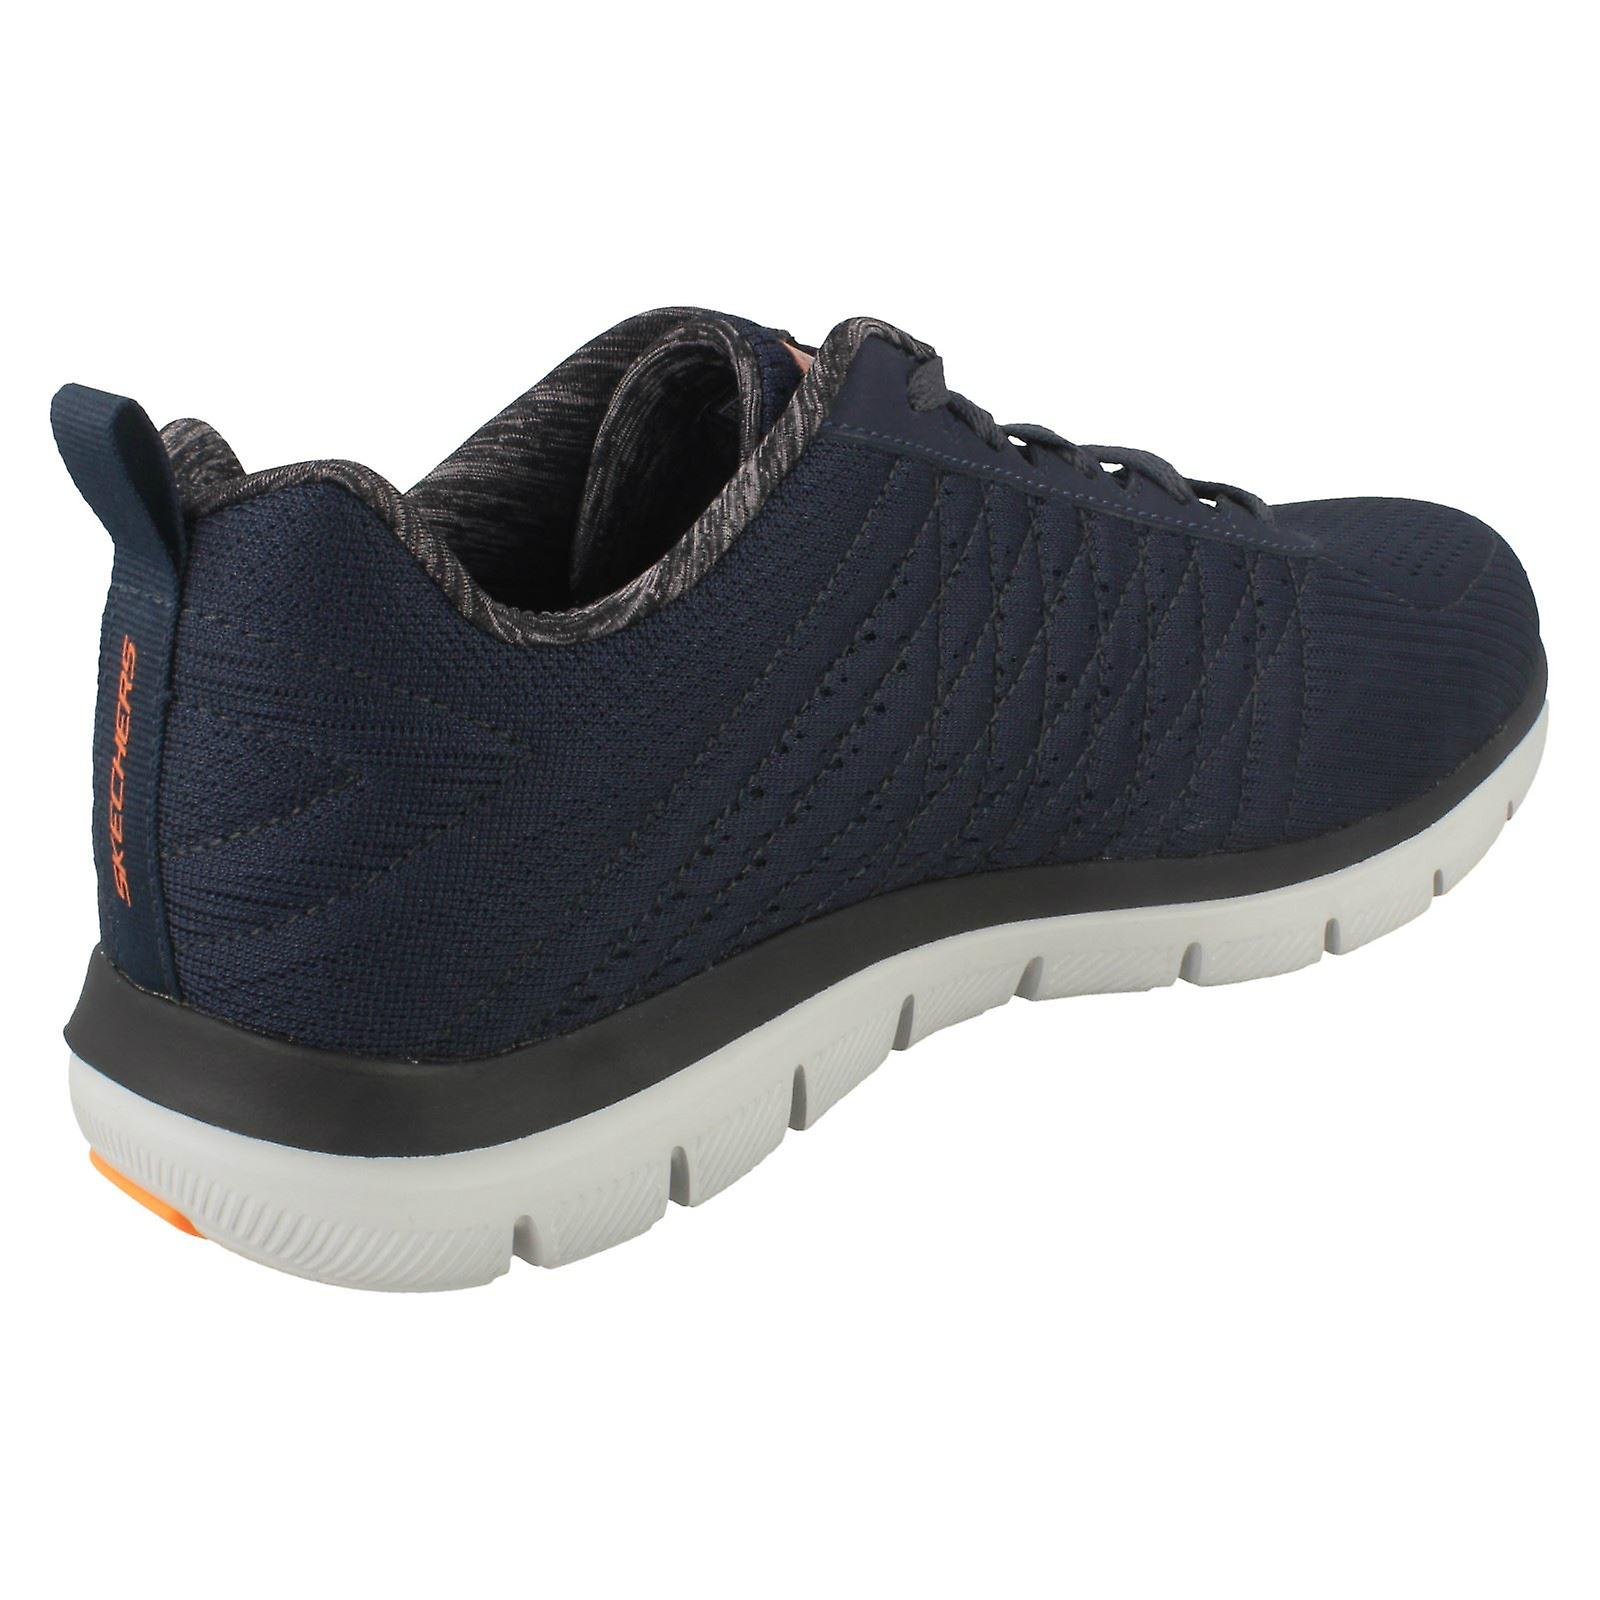 half off ff87b 973c1 Mens Skechers Air Cooled Trainers The Happs 52185